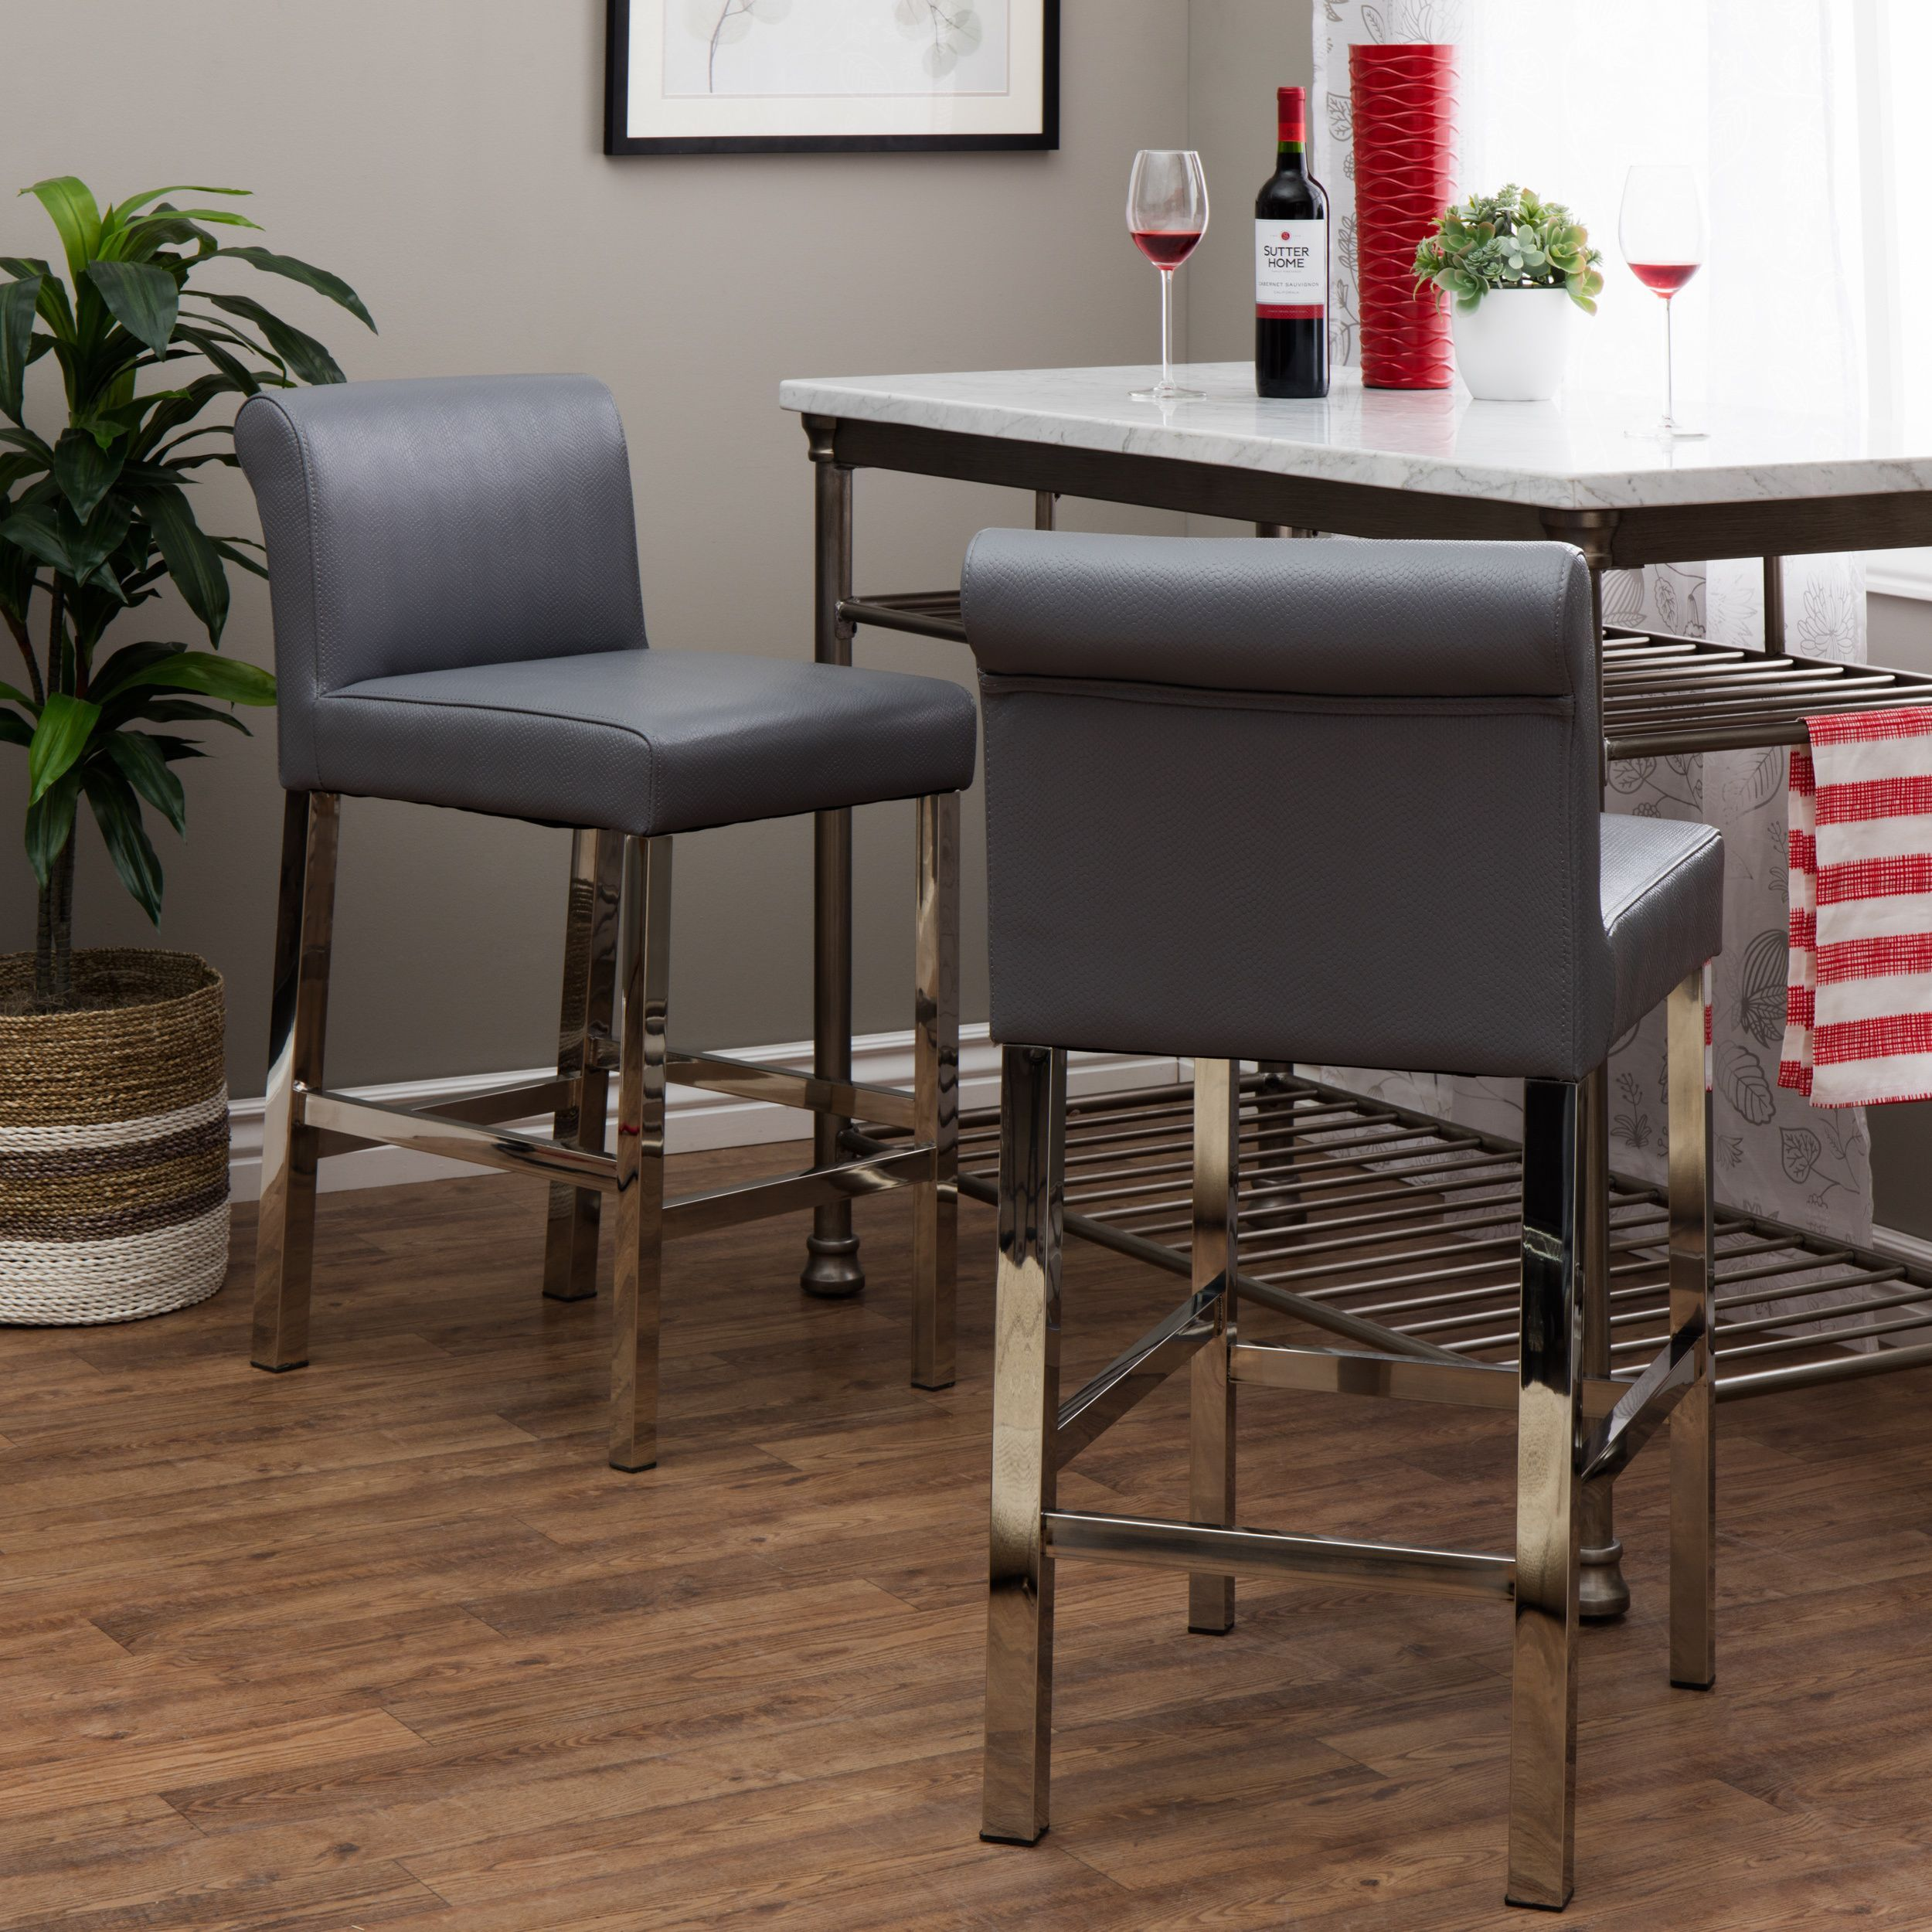 Beautiful Stainless Steel Bar Table and Stools